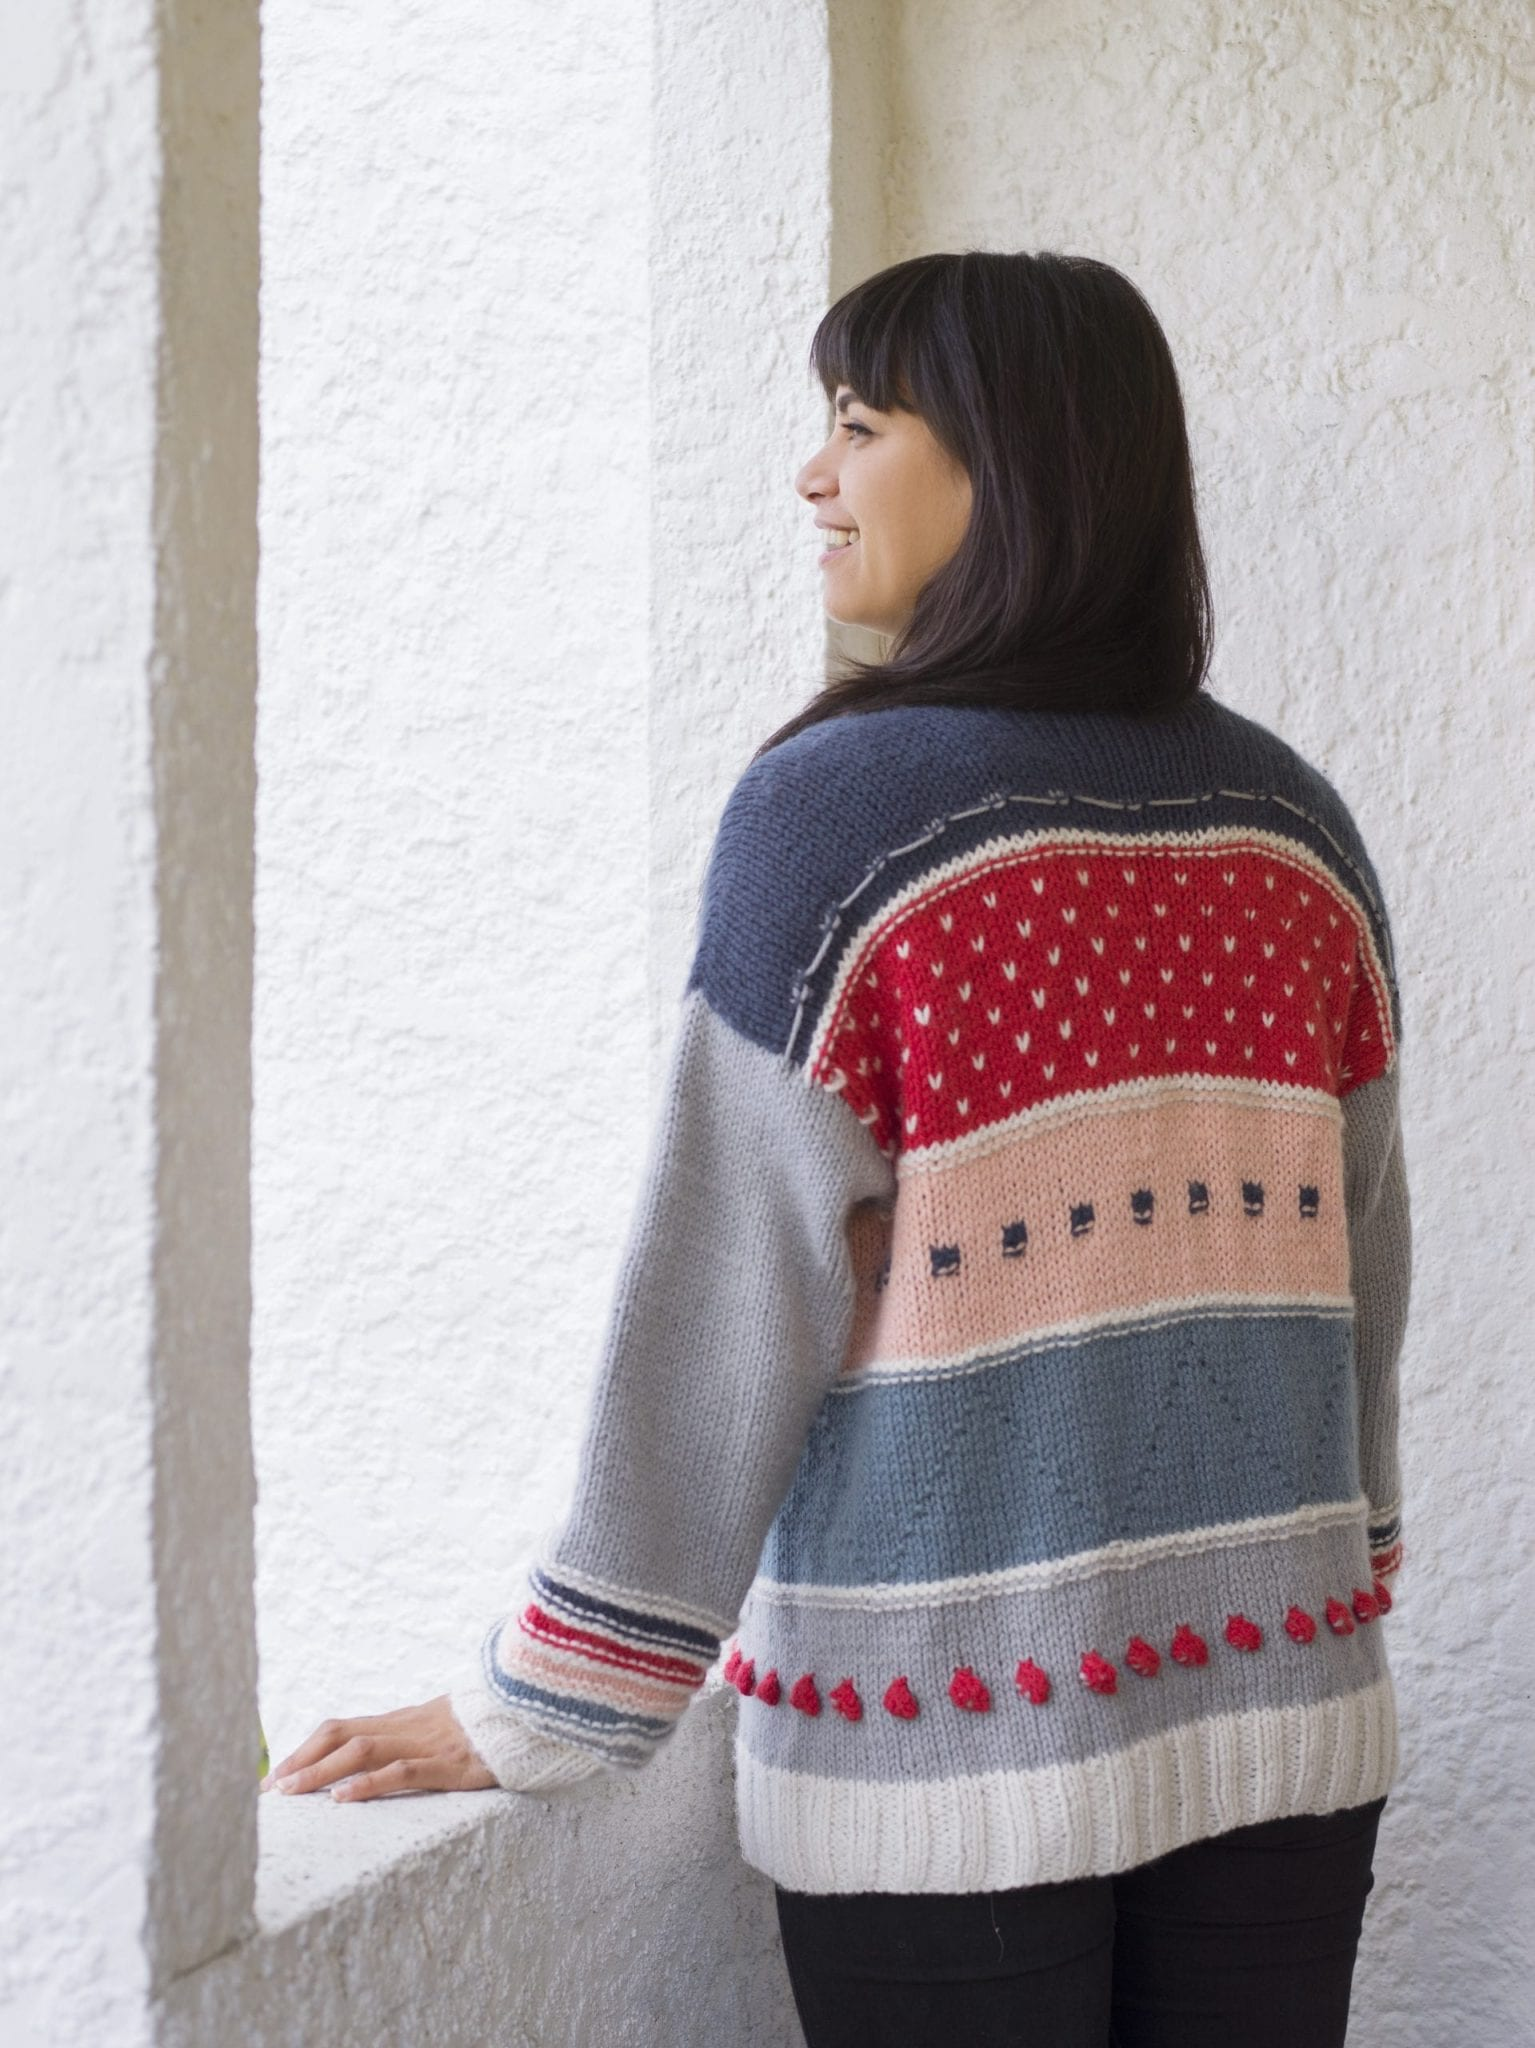 The Woven Mixed Tape Cardigan Knitting Pattern knit kit